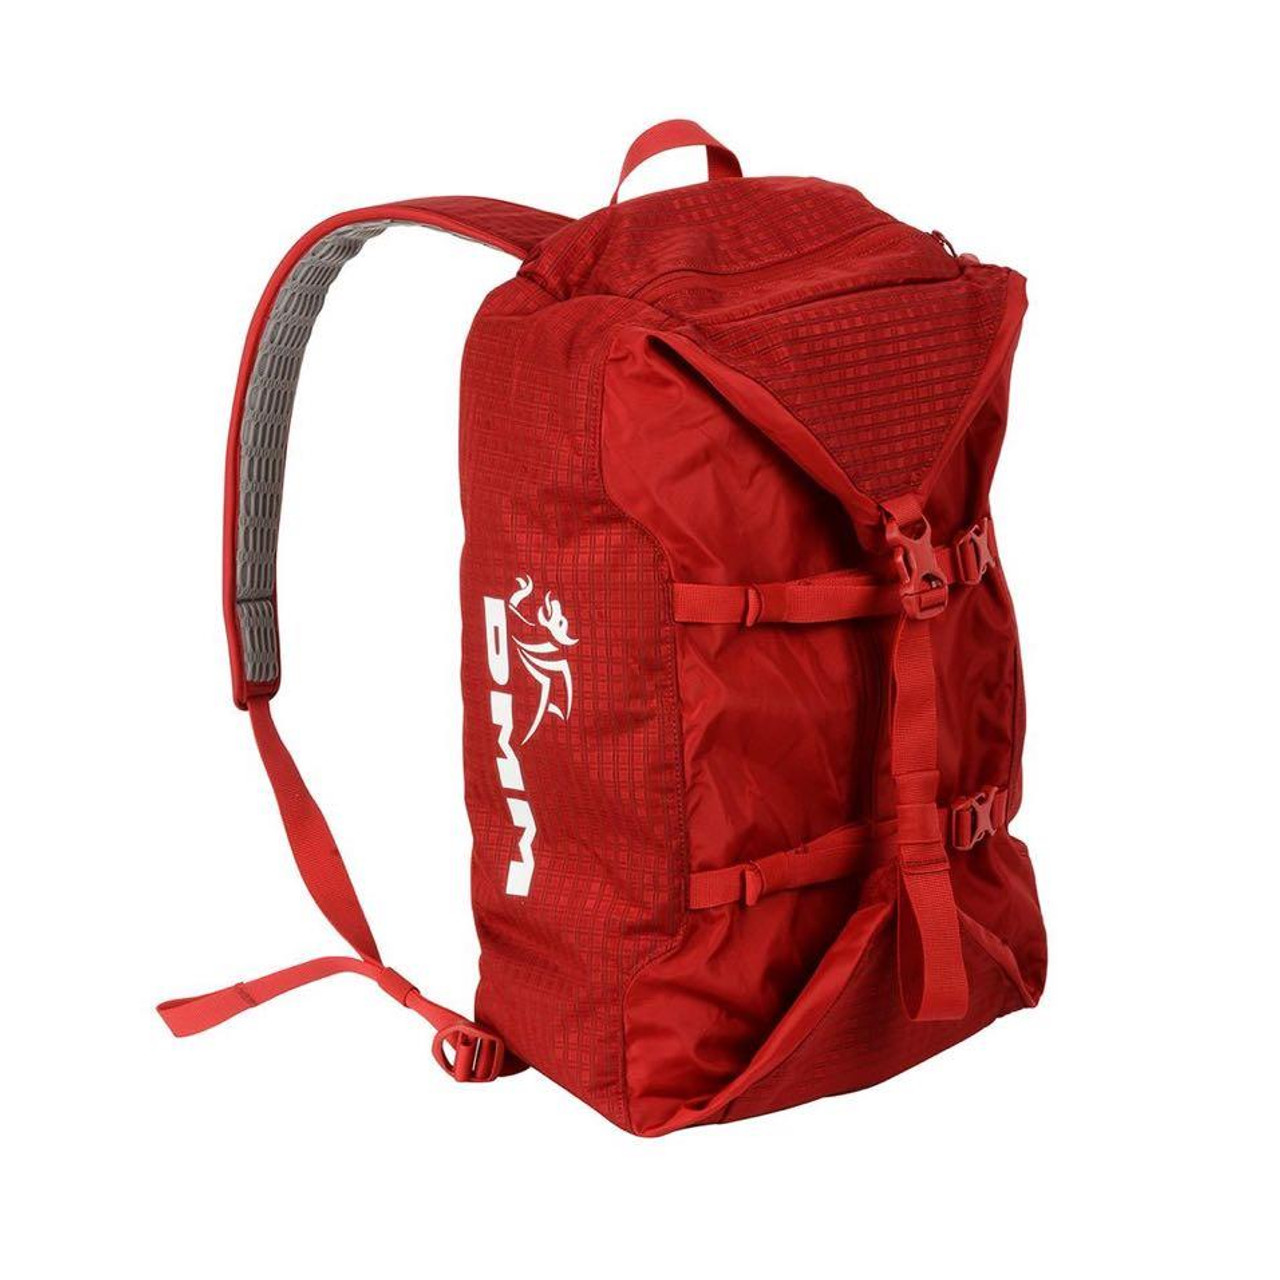 DMM Classic Rope Bag - Red